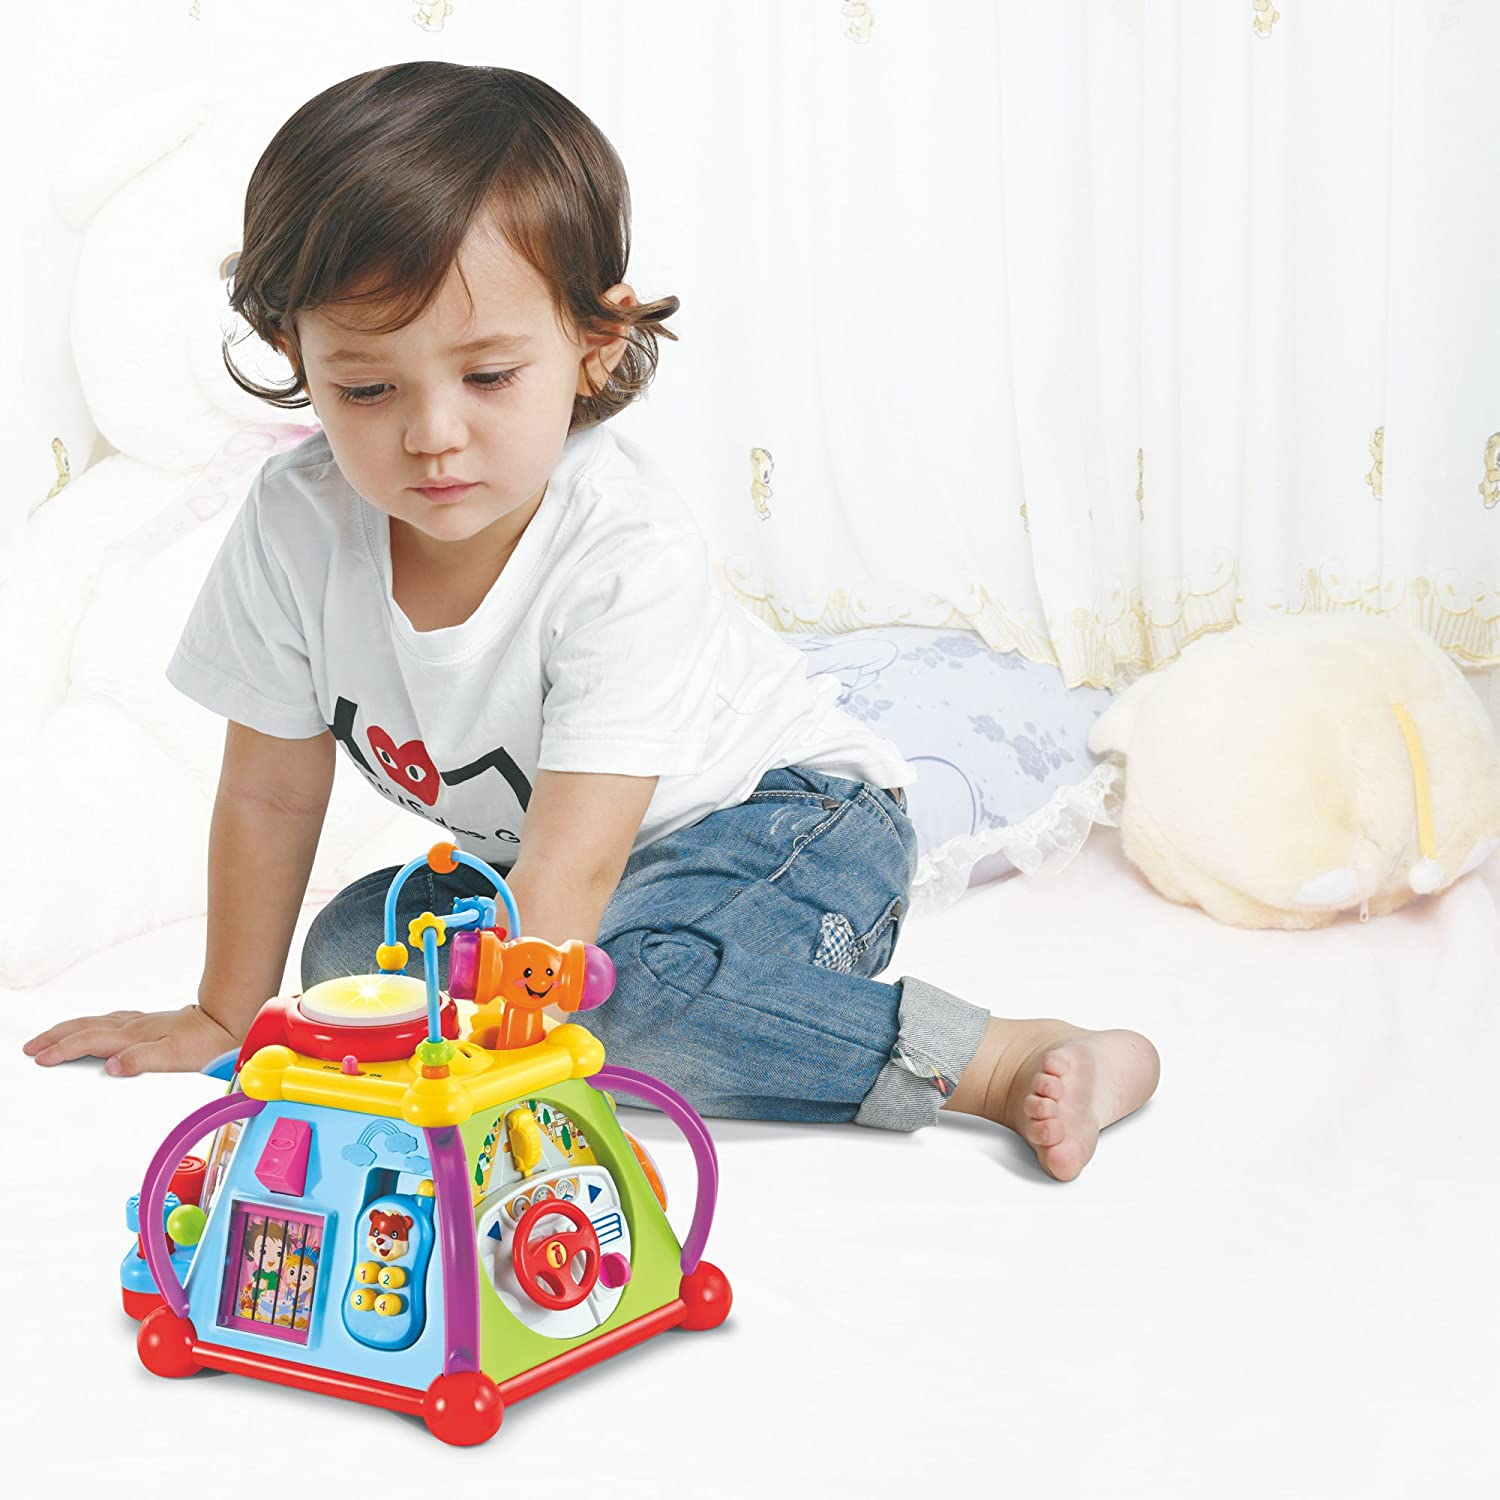 Tippi Musical Activity Centre Amazon Toys & Games